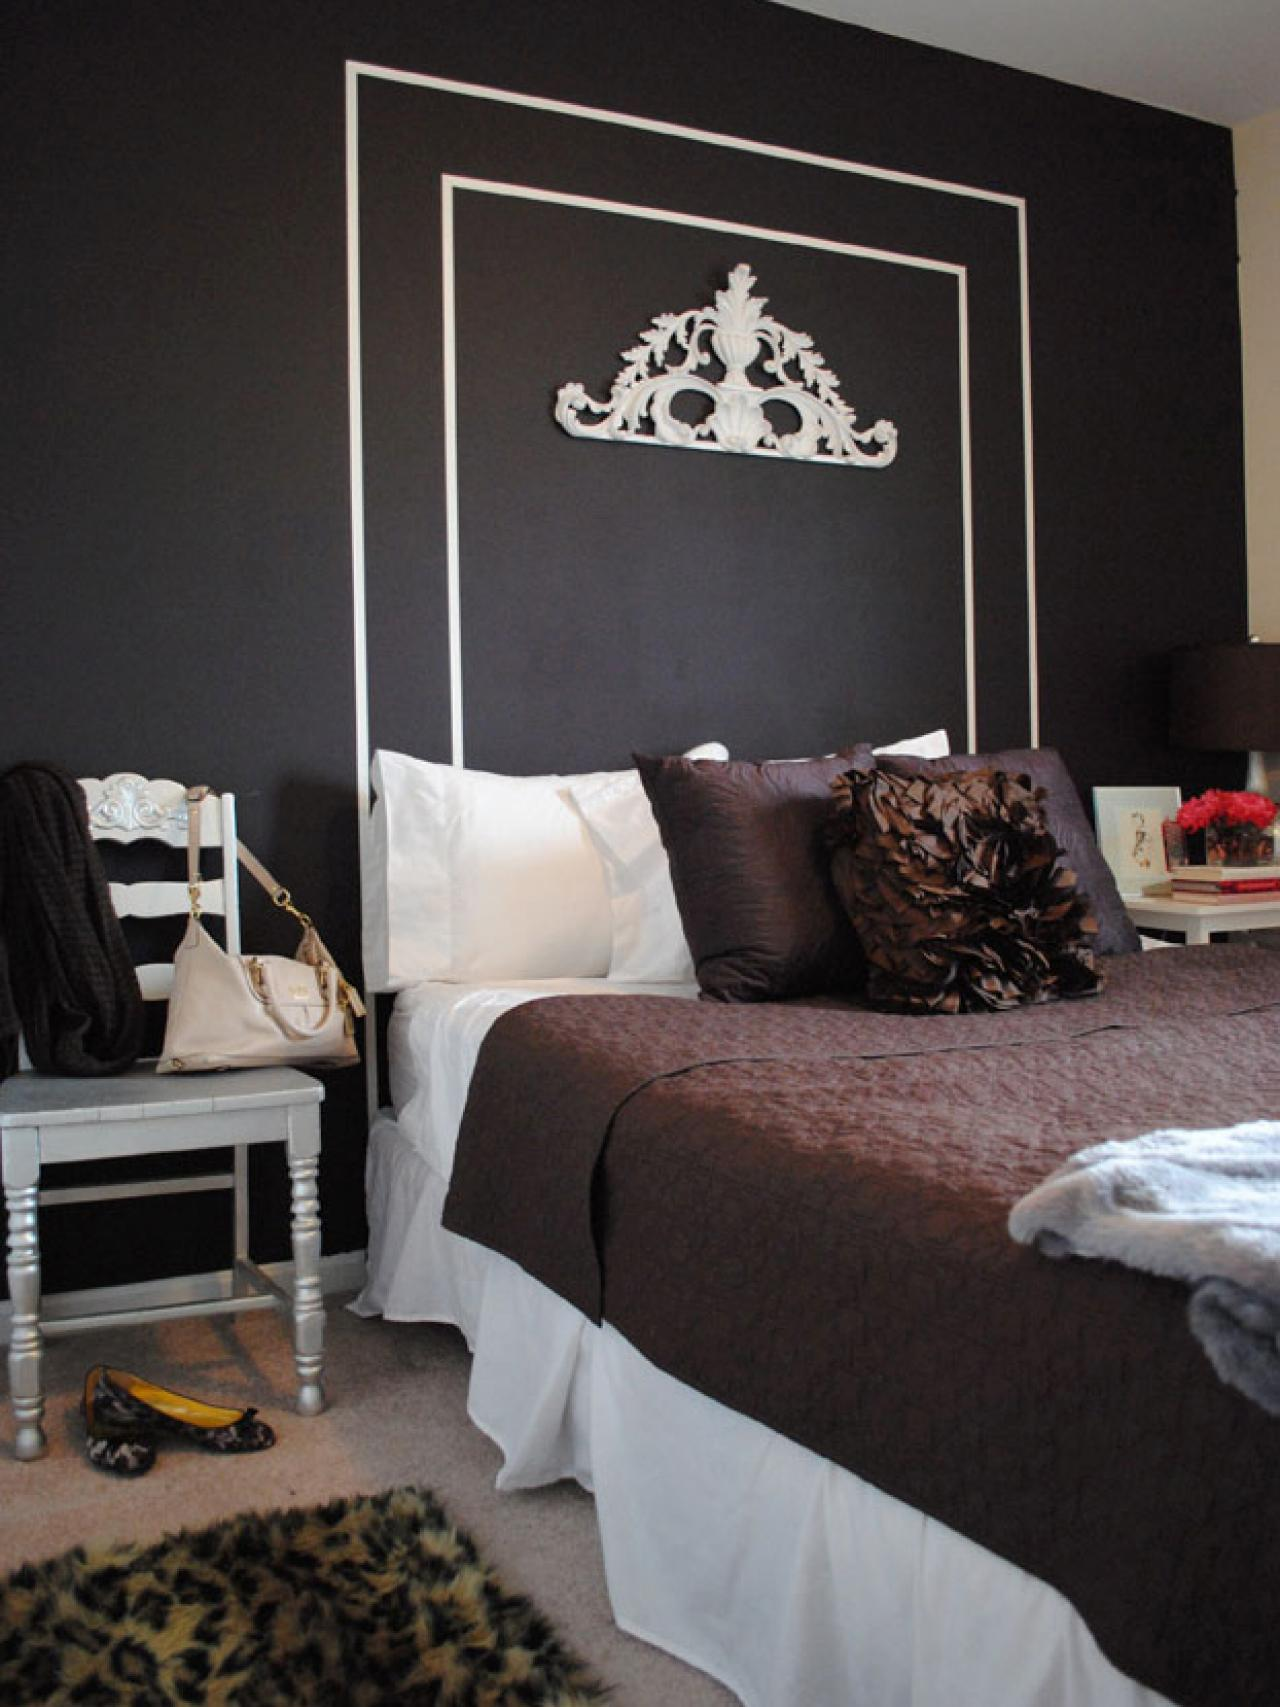 Unique and Decorative Headboards Made by DIY - HomesFeed